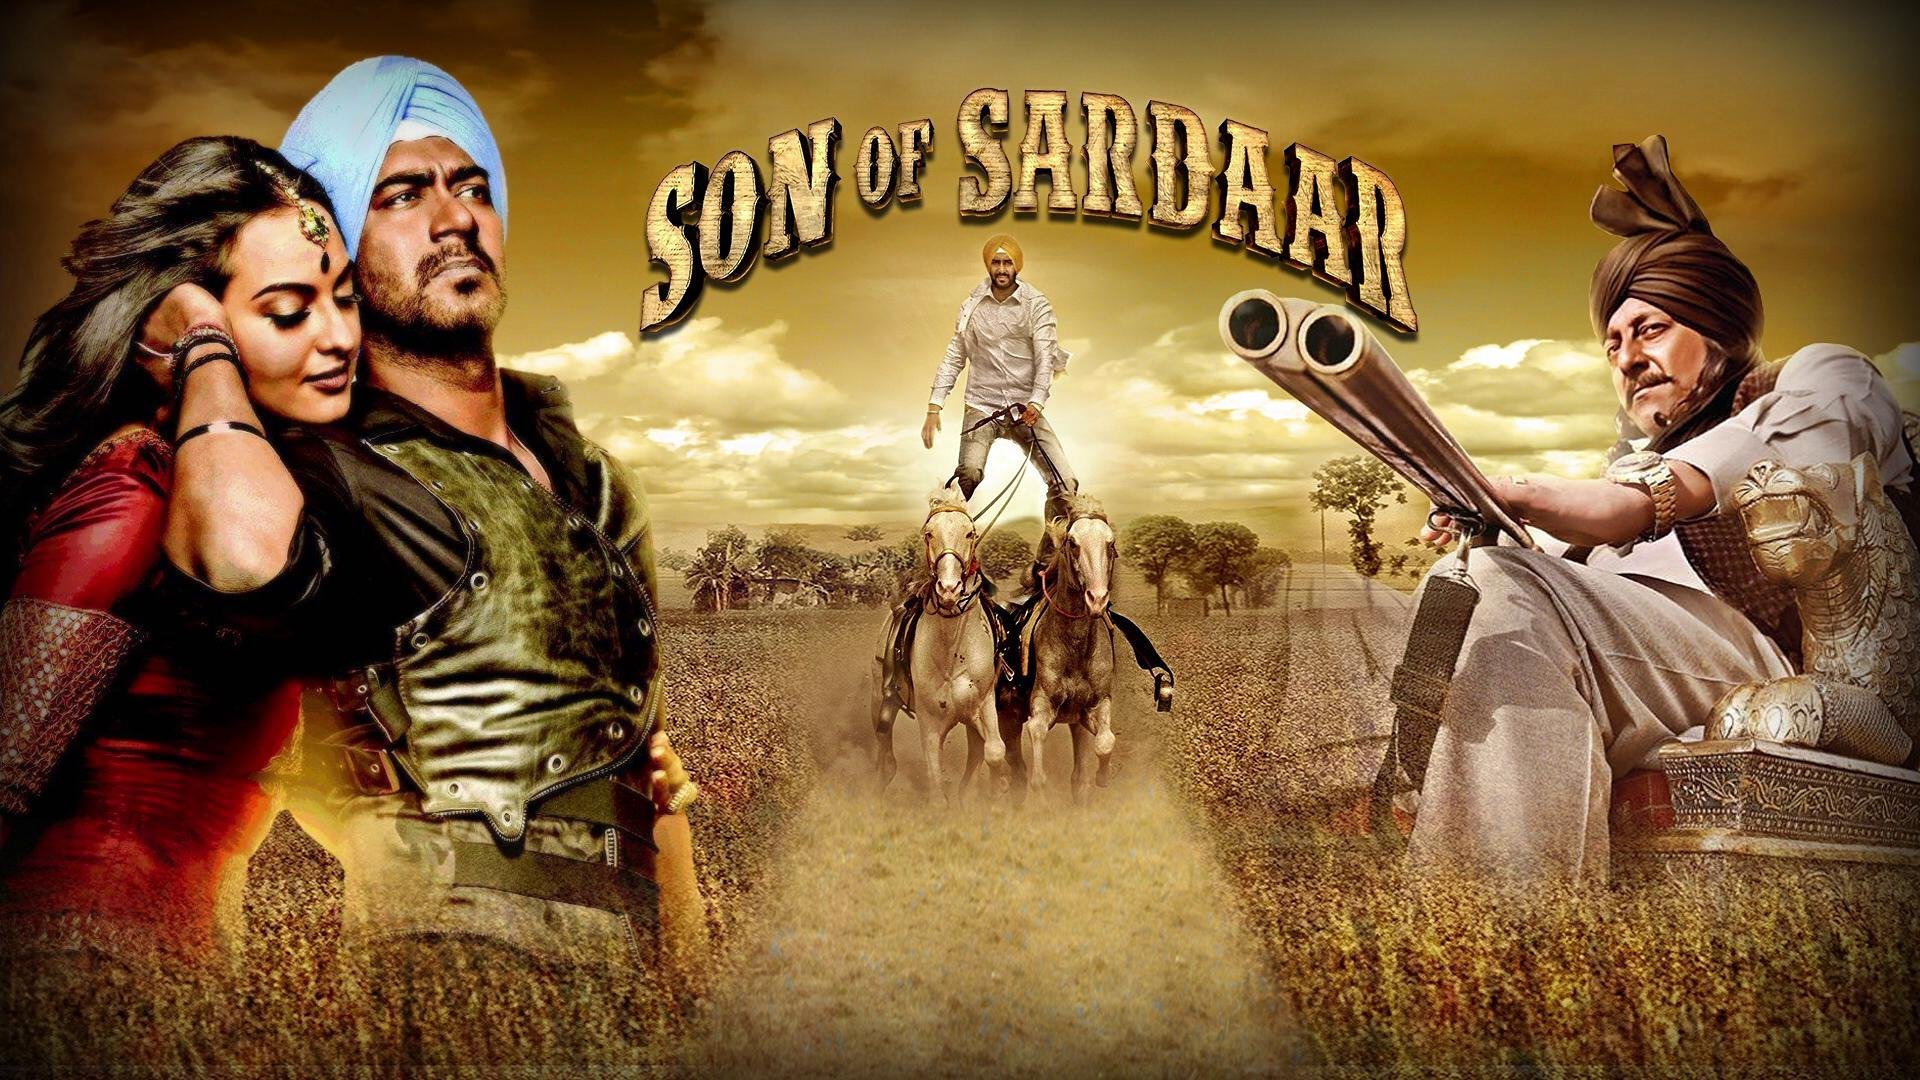 Son Of Sardar Movie Wallpapers Hd: 50 Bollywood Movies That Were Ahead Of Their Time